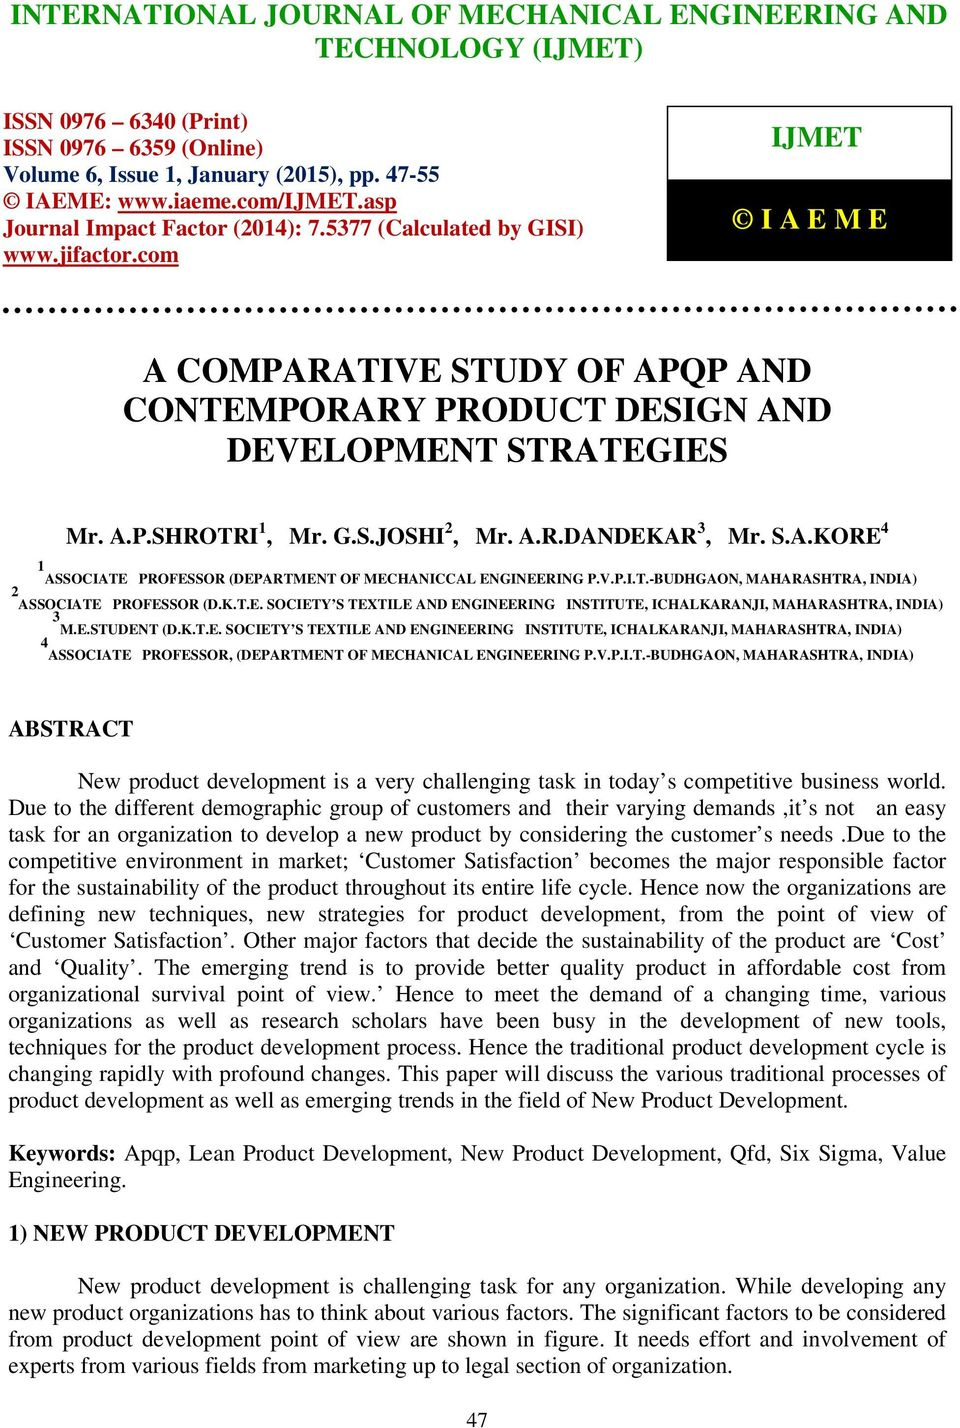 com IJMET I A E M E A COMPARATIVE STUDY OF APQP AND CONTEMPORARY PRODUCT DESIGN AND DEVELOPMENT STRATEGIES Mr. A.P.SHROTRI 1, Mr. G.S.JOSHI 2, Mr. A.R.DANDEKAR 3, Mr. S.A.KORE 4 1 ASSOCIATE PROFESSOR (DEPARTMENT OF MECHANICCAL ENGINEERING P.